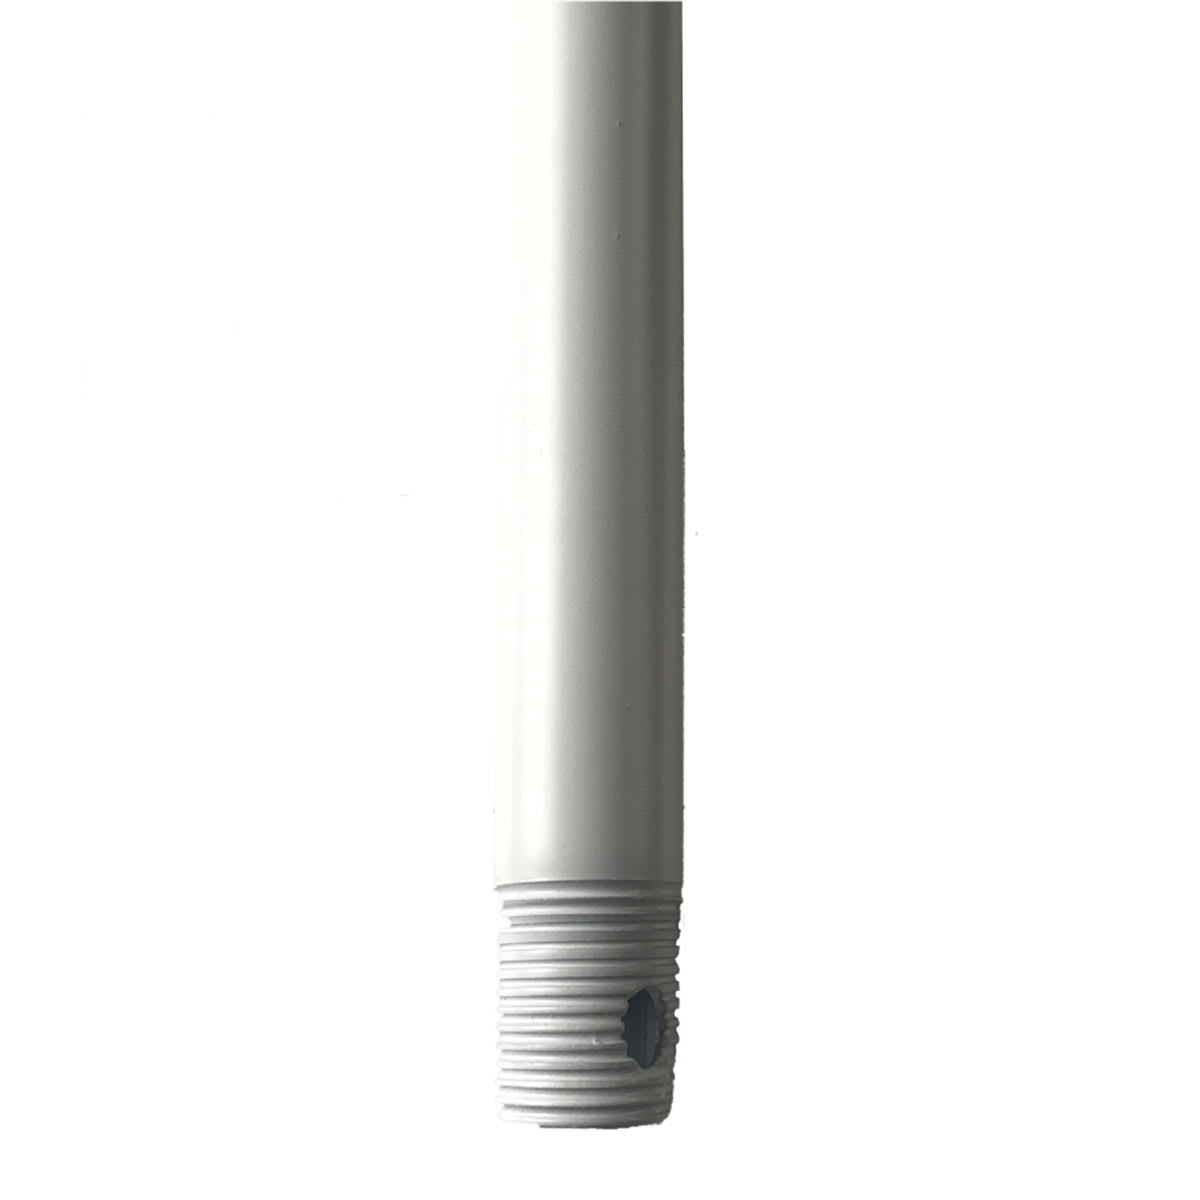 36 Inches WAC Lighting DR36-BN Extension Ceiling Fan Downrod Brushed Nickel